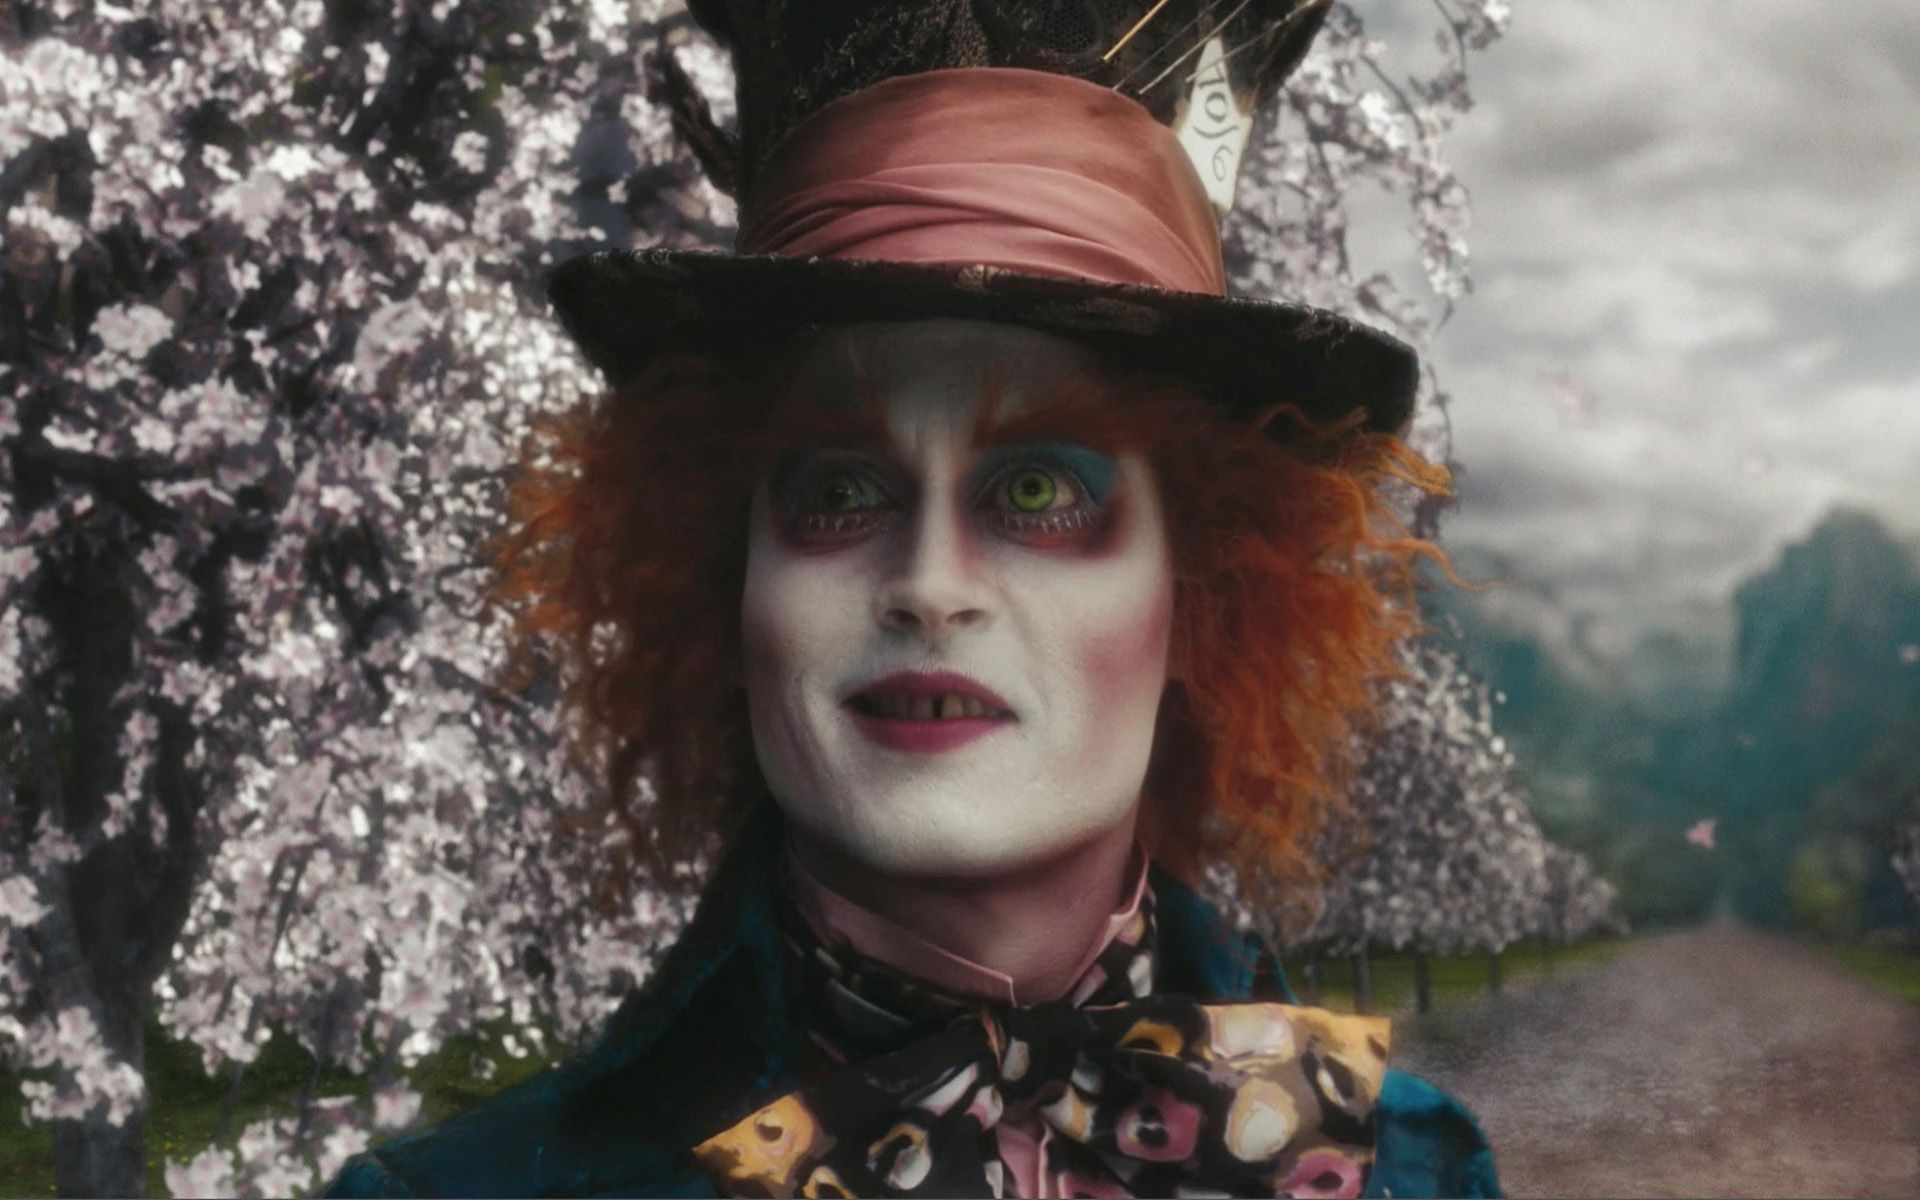 Mad Hatter Wallpaper Pictures Images Photos Photobucket 1920 1200 The Mad Hatter Wallpapers 30 Wallpa Johnny Depp Mad Hatter Alice In Wonderland Wonderland